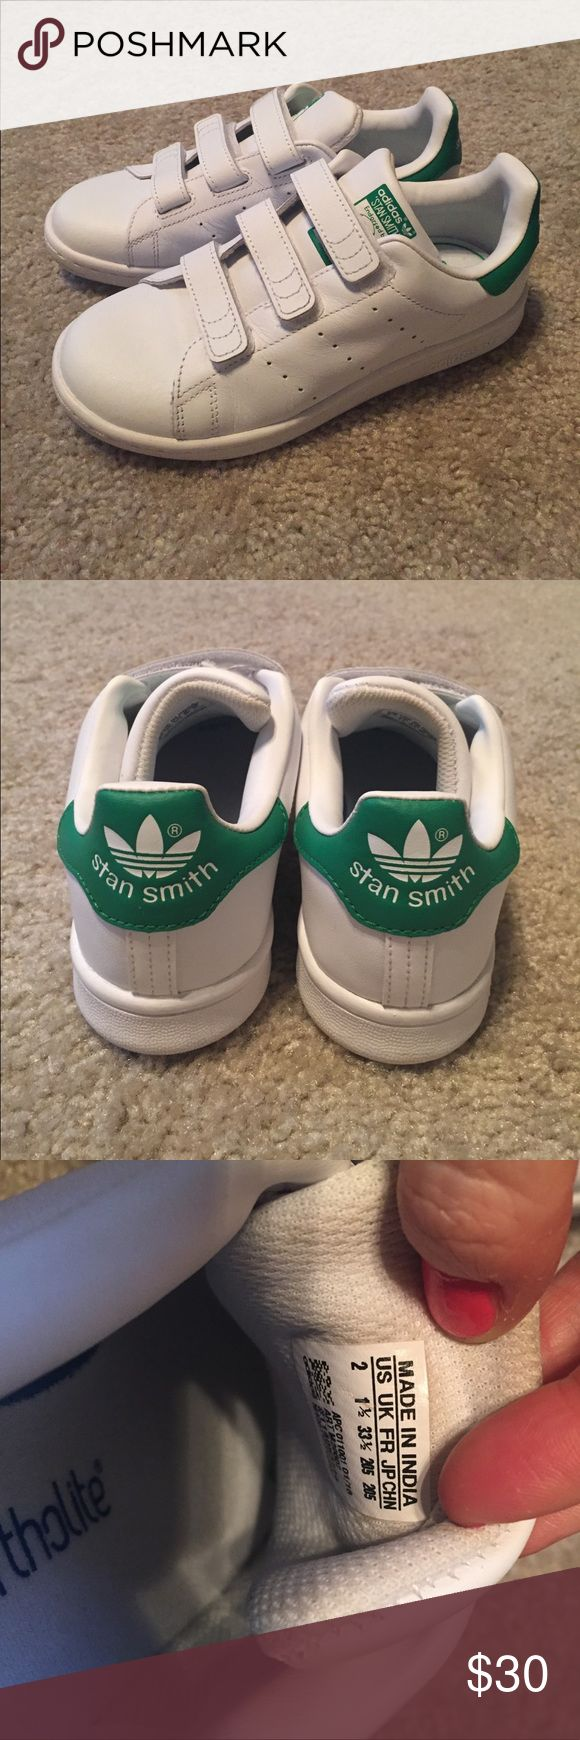 Velcro Adidas Stan Smiths Velcro Adidas Stan Smiths; Green; US big kids size 2 (fits like a small 5); Worn only 2-3 times (there is a little dust inside the tongue as shown but no wear at all on the insoles) adidas Shoes Sneakers